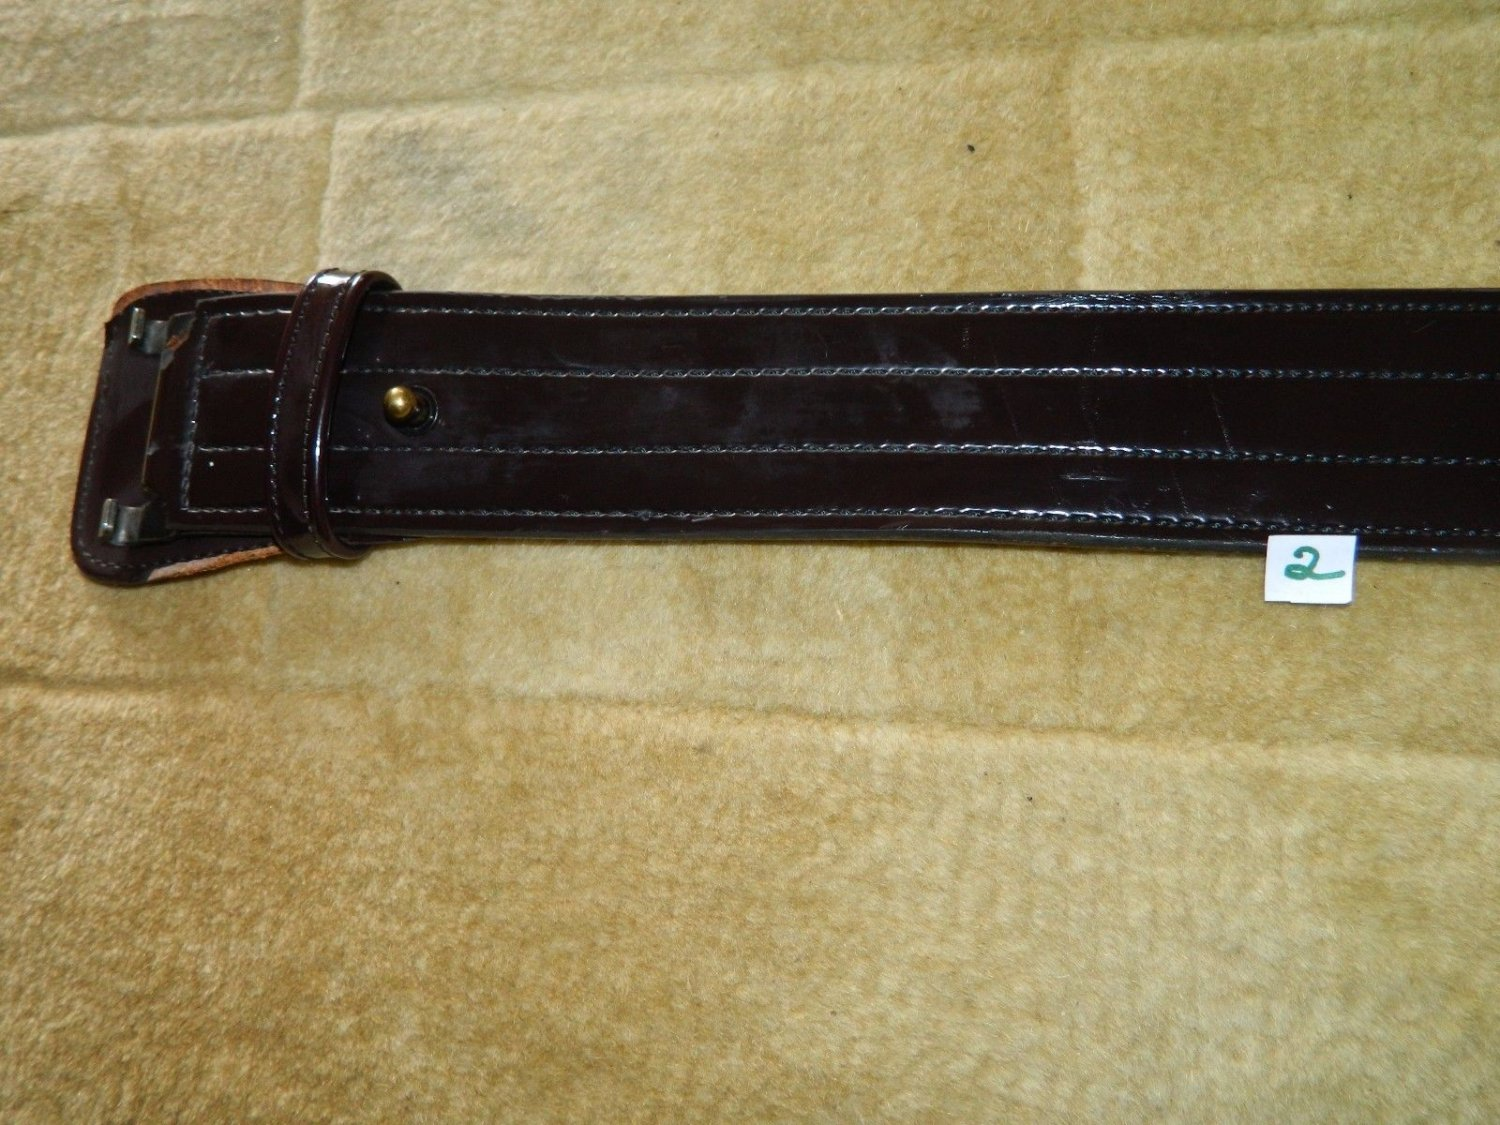 Don Hume Model B101 Burgundy Glossy Leather Sz 36 - Duty Belt - With Buckle #2